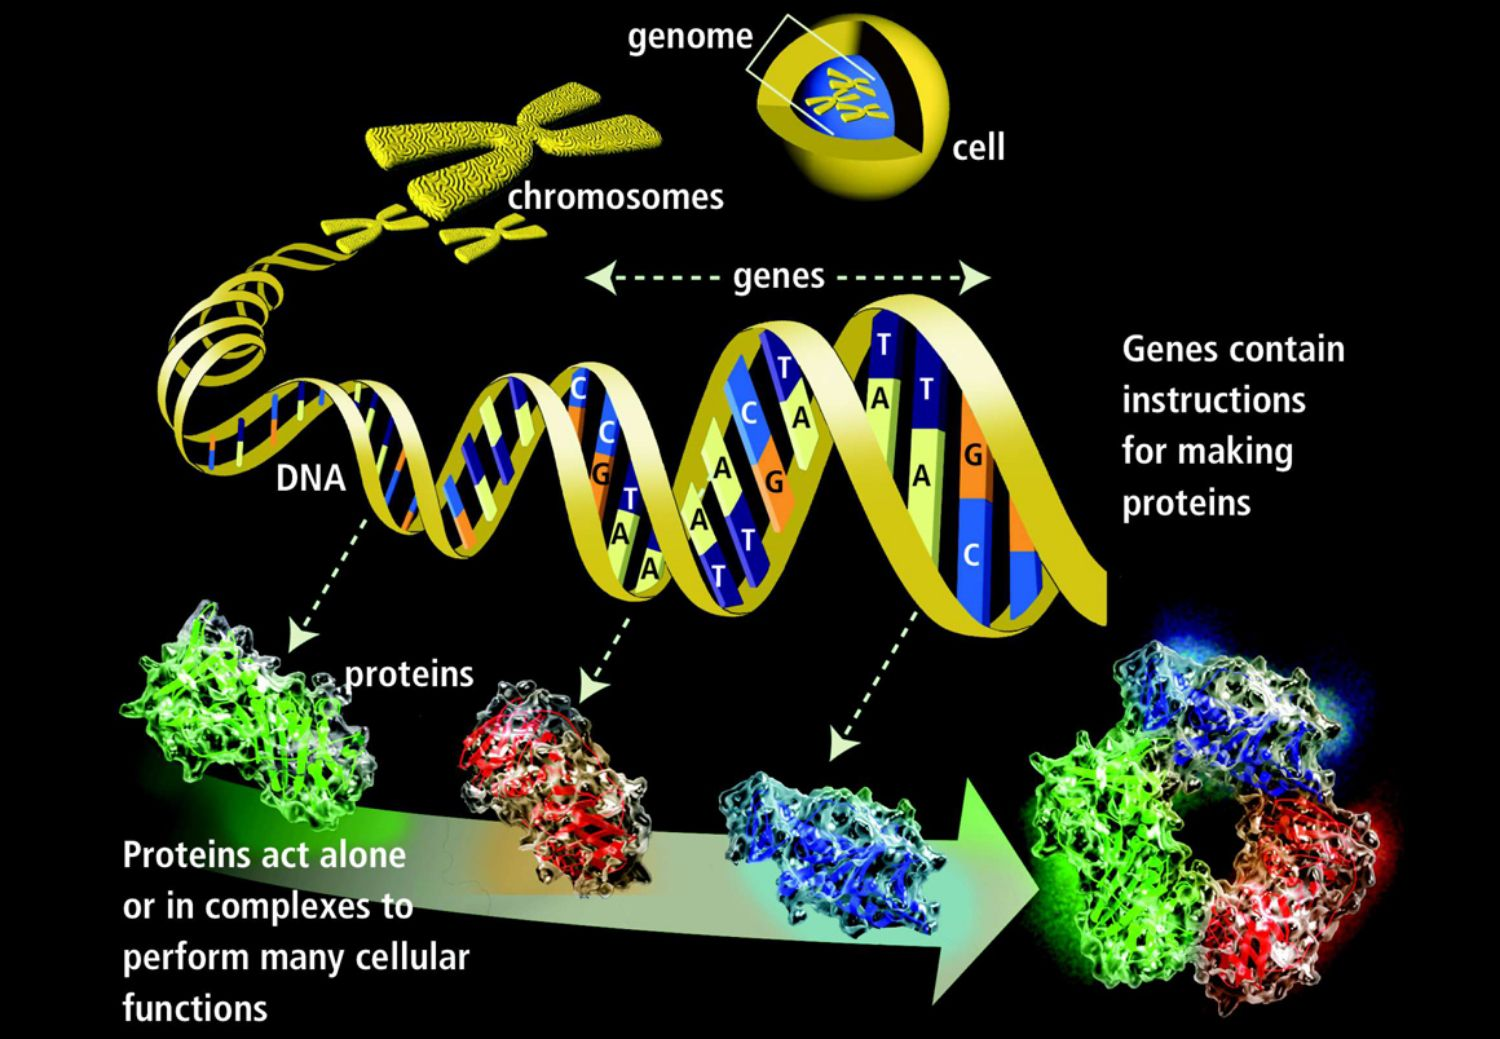 functional units of dna that contain instructions